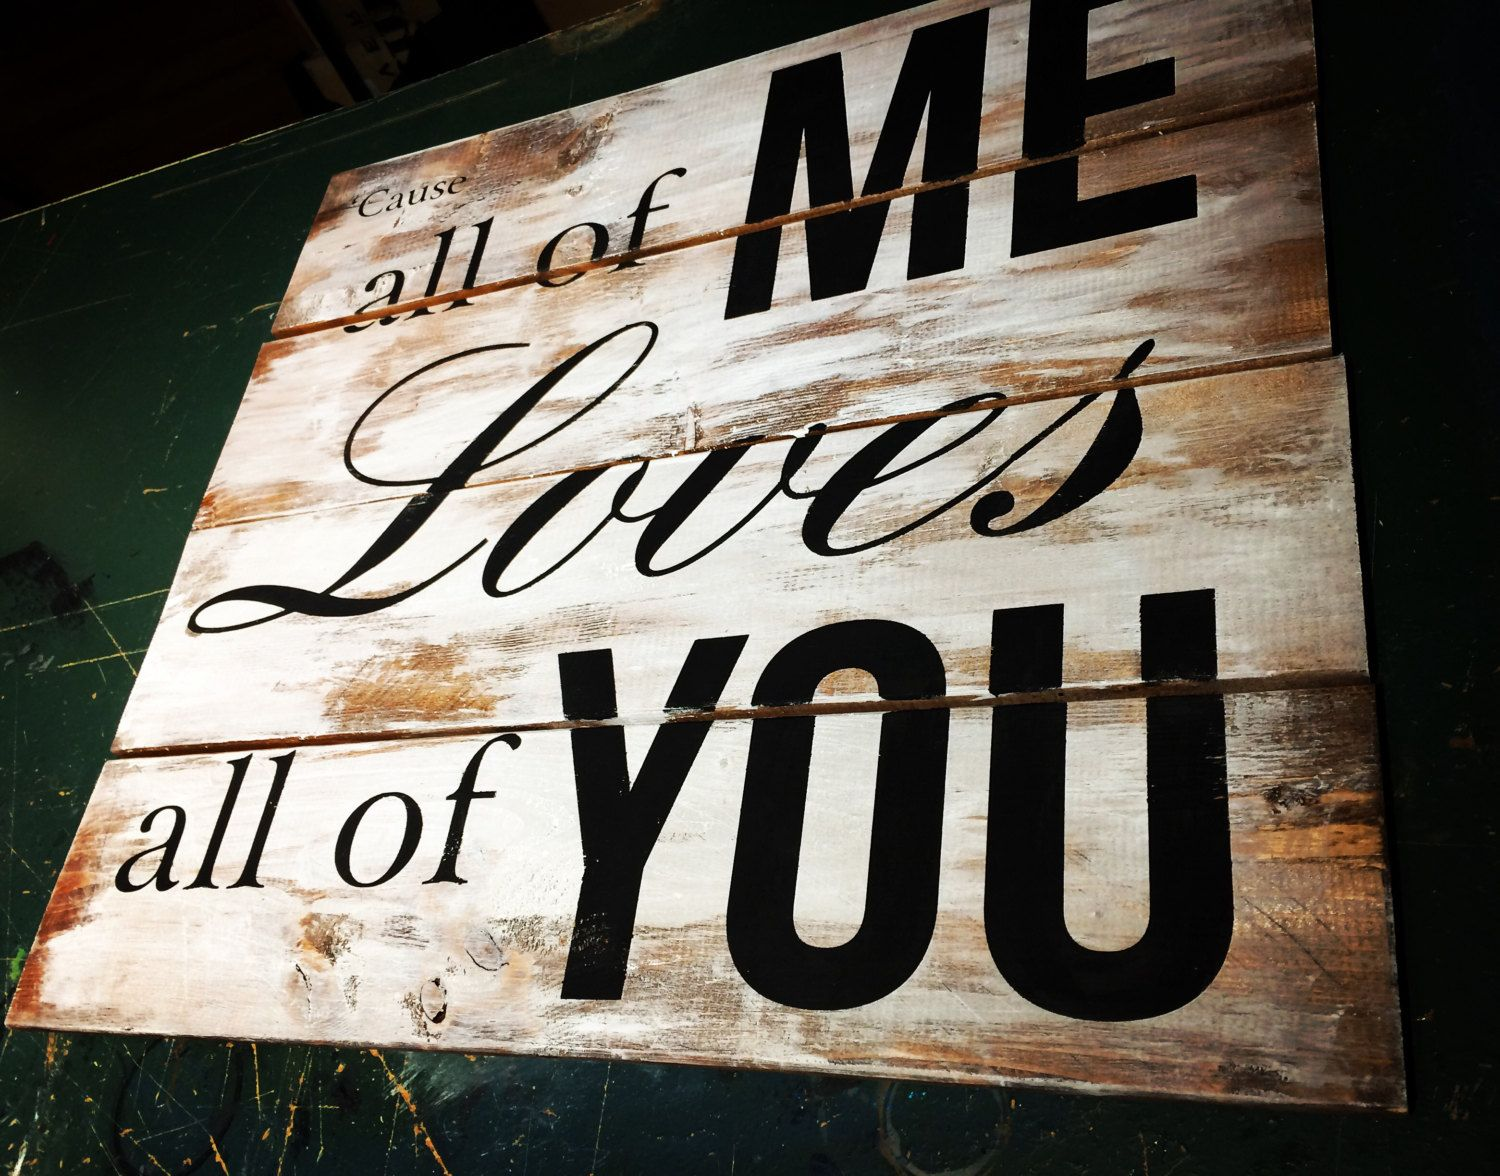 Love Plaques Quotes Magnificent All Of Me Loves All Of You Rustic Wood Pallet Sign  Sign Quotes